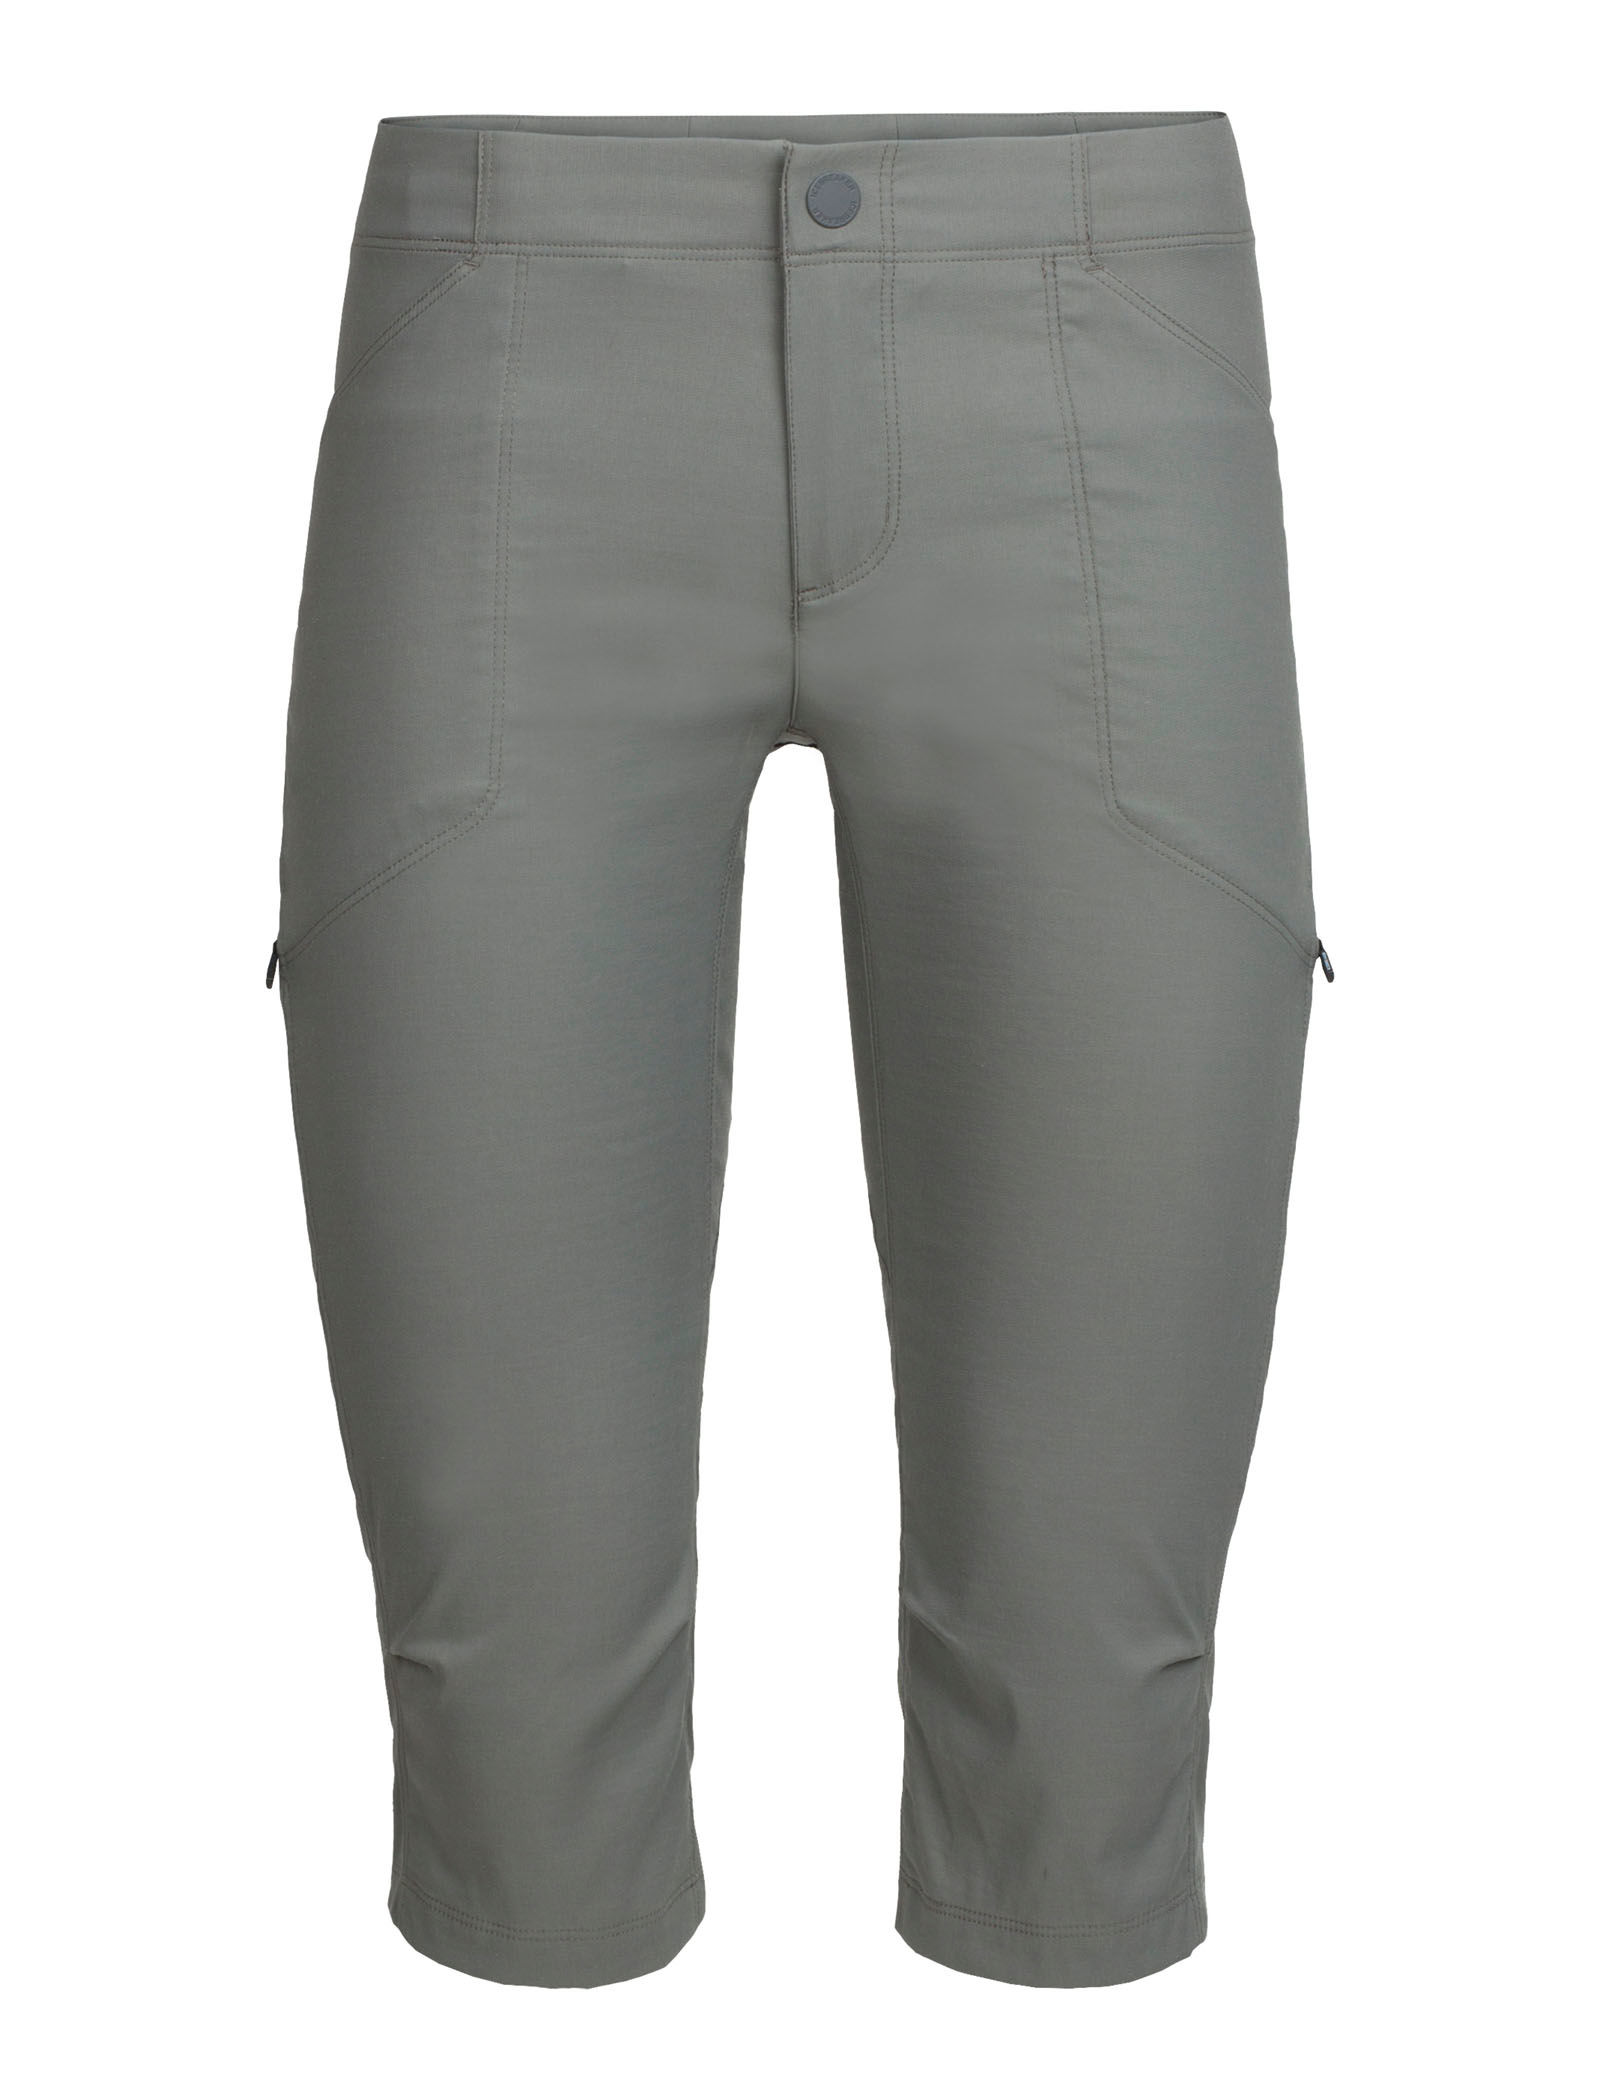 90404429959 Icebreaker Connection Commuter 3Q Pants, Up to 48% Off with Free S&H —  CampSaver